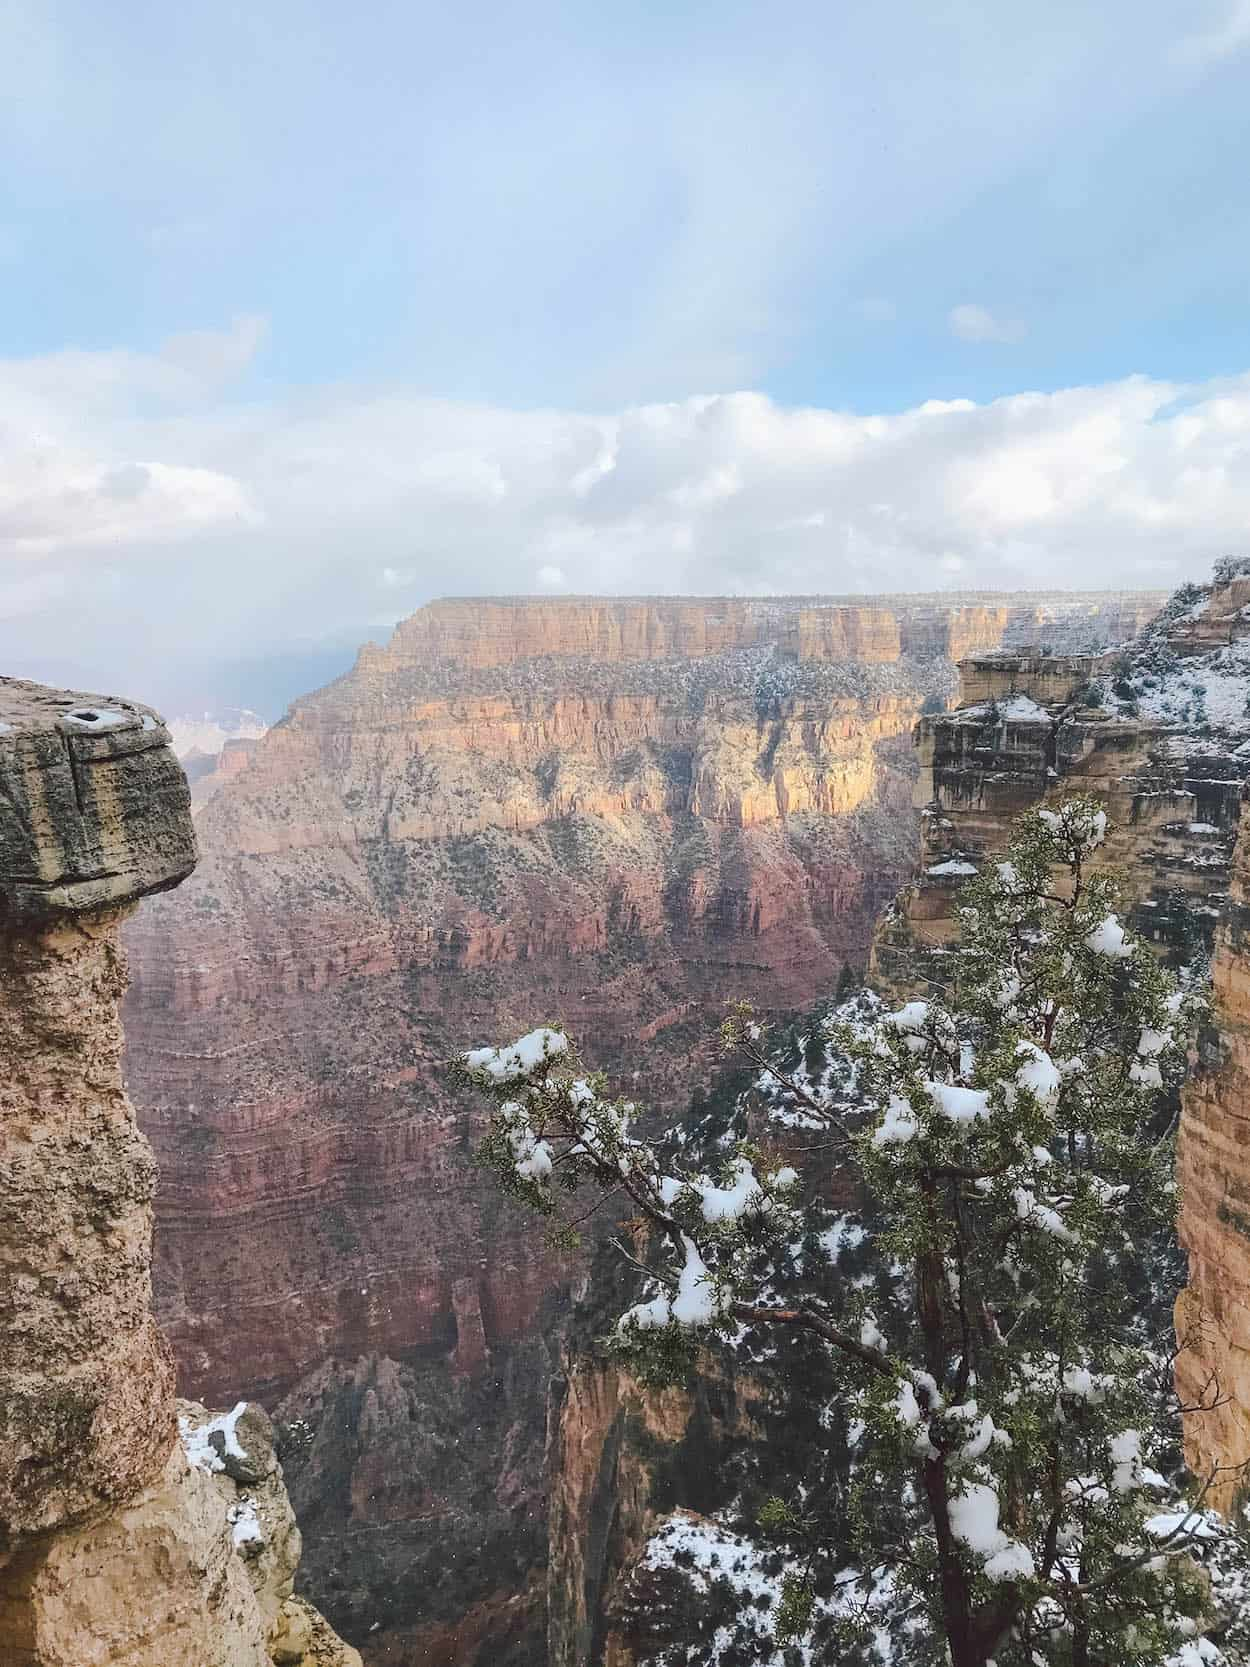 Grand Canyon National Park in Arizona, United States